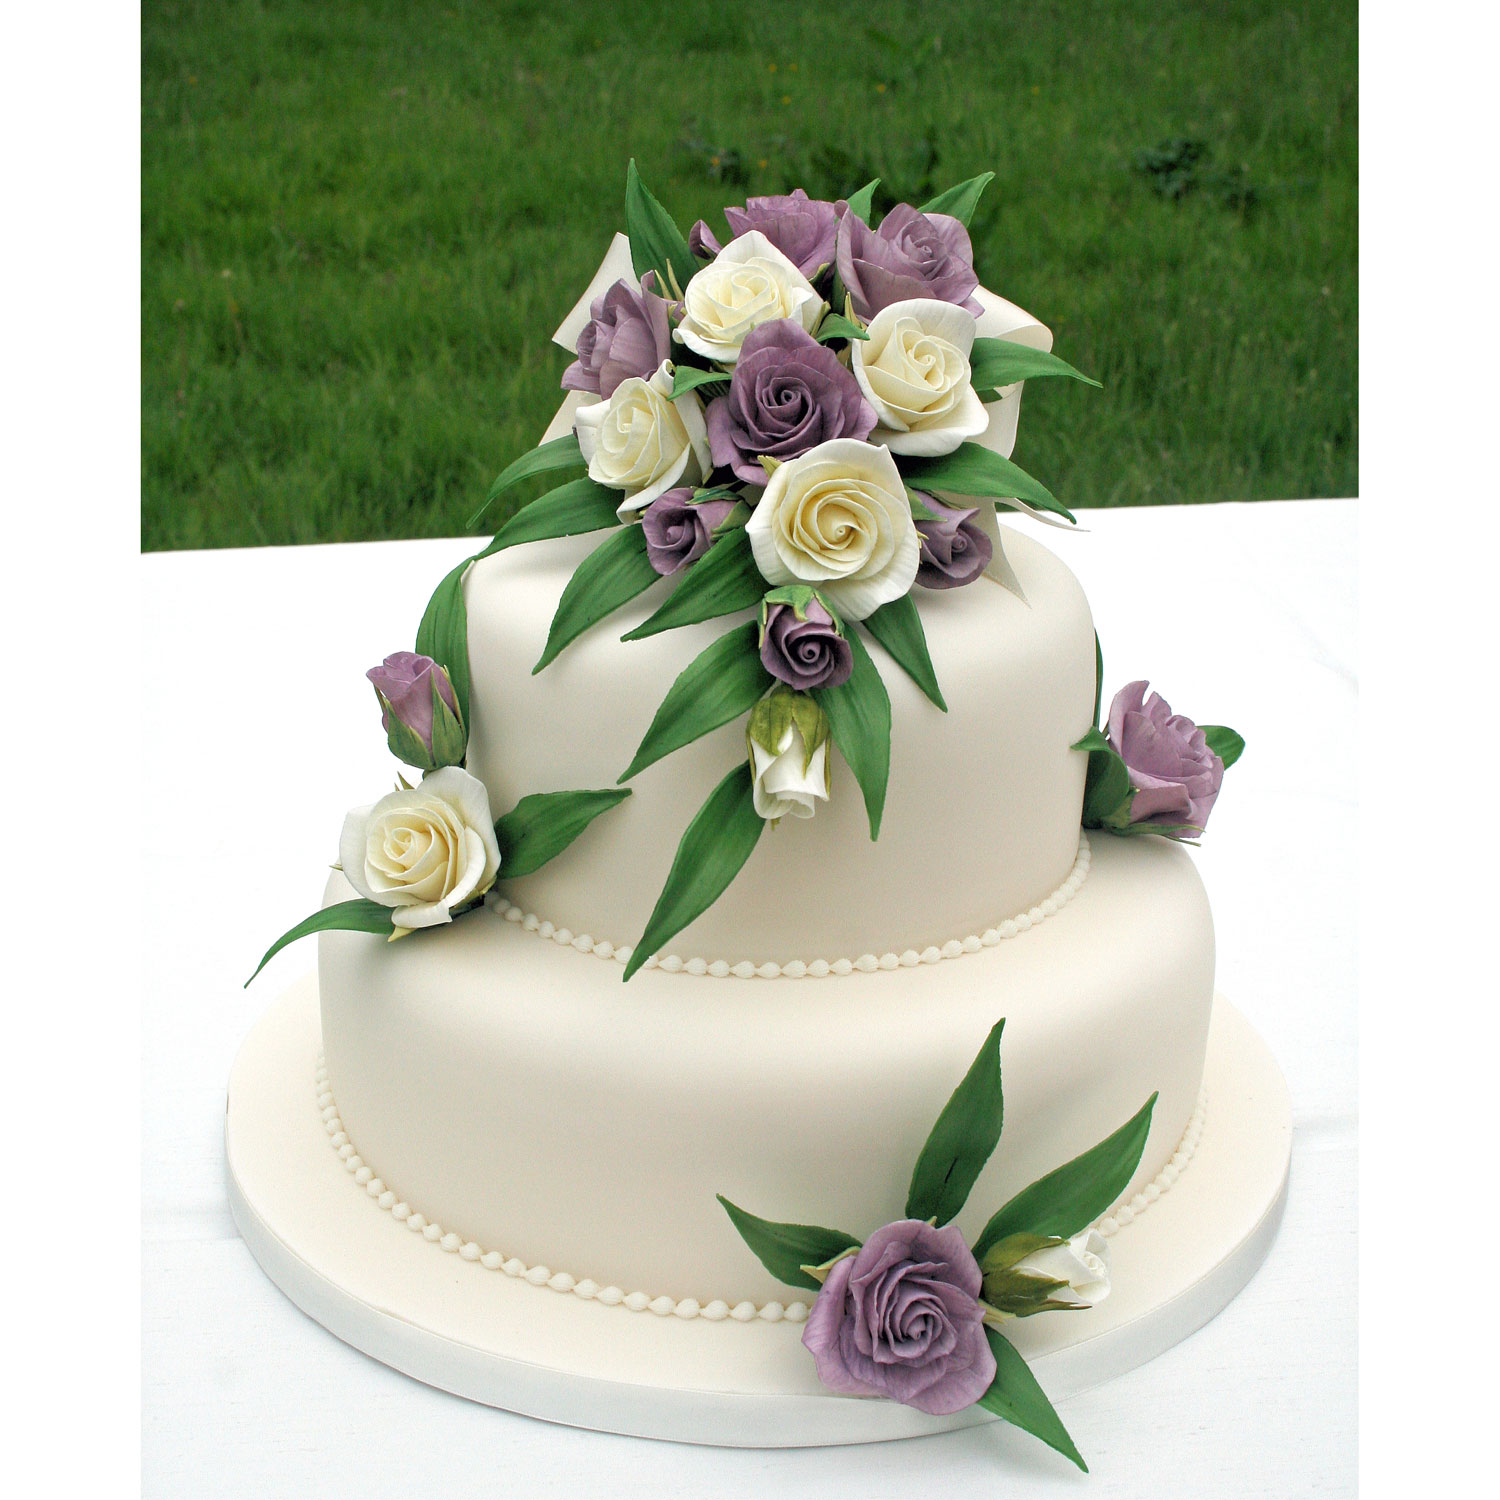 2 Tier Wedding Cake with Sugarcaft Flowers